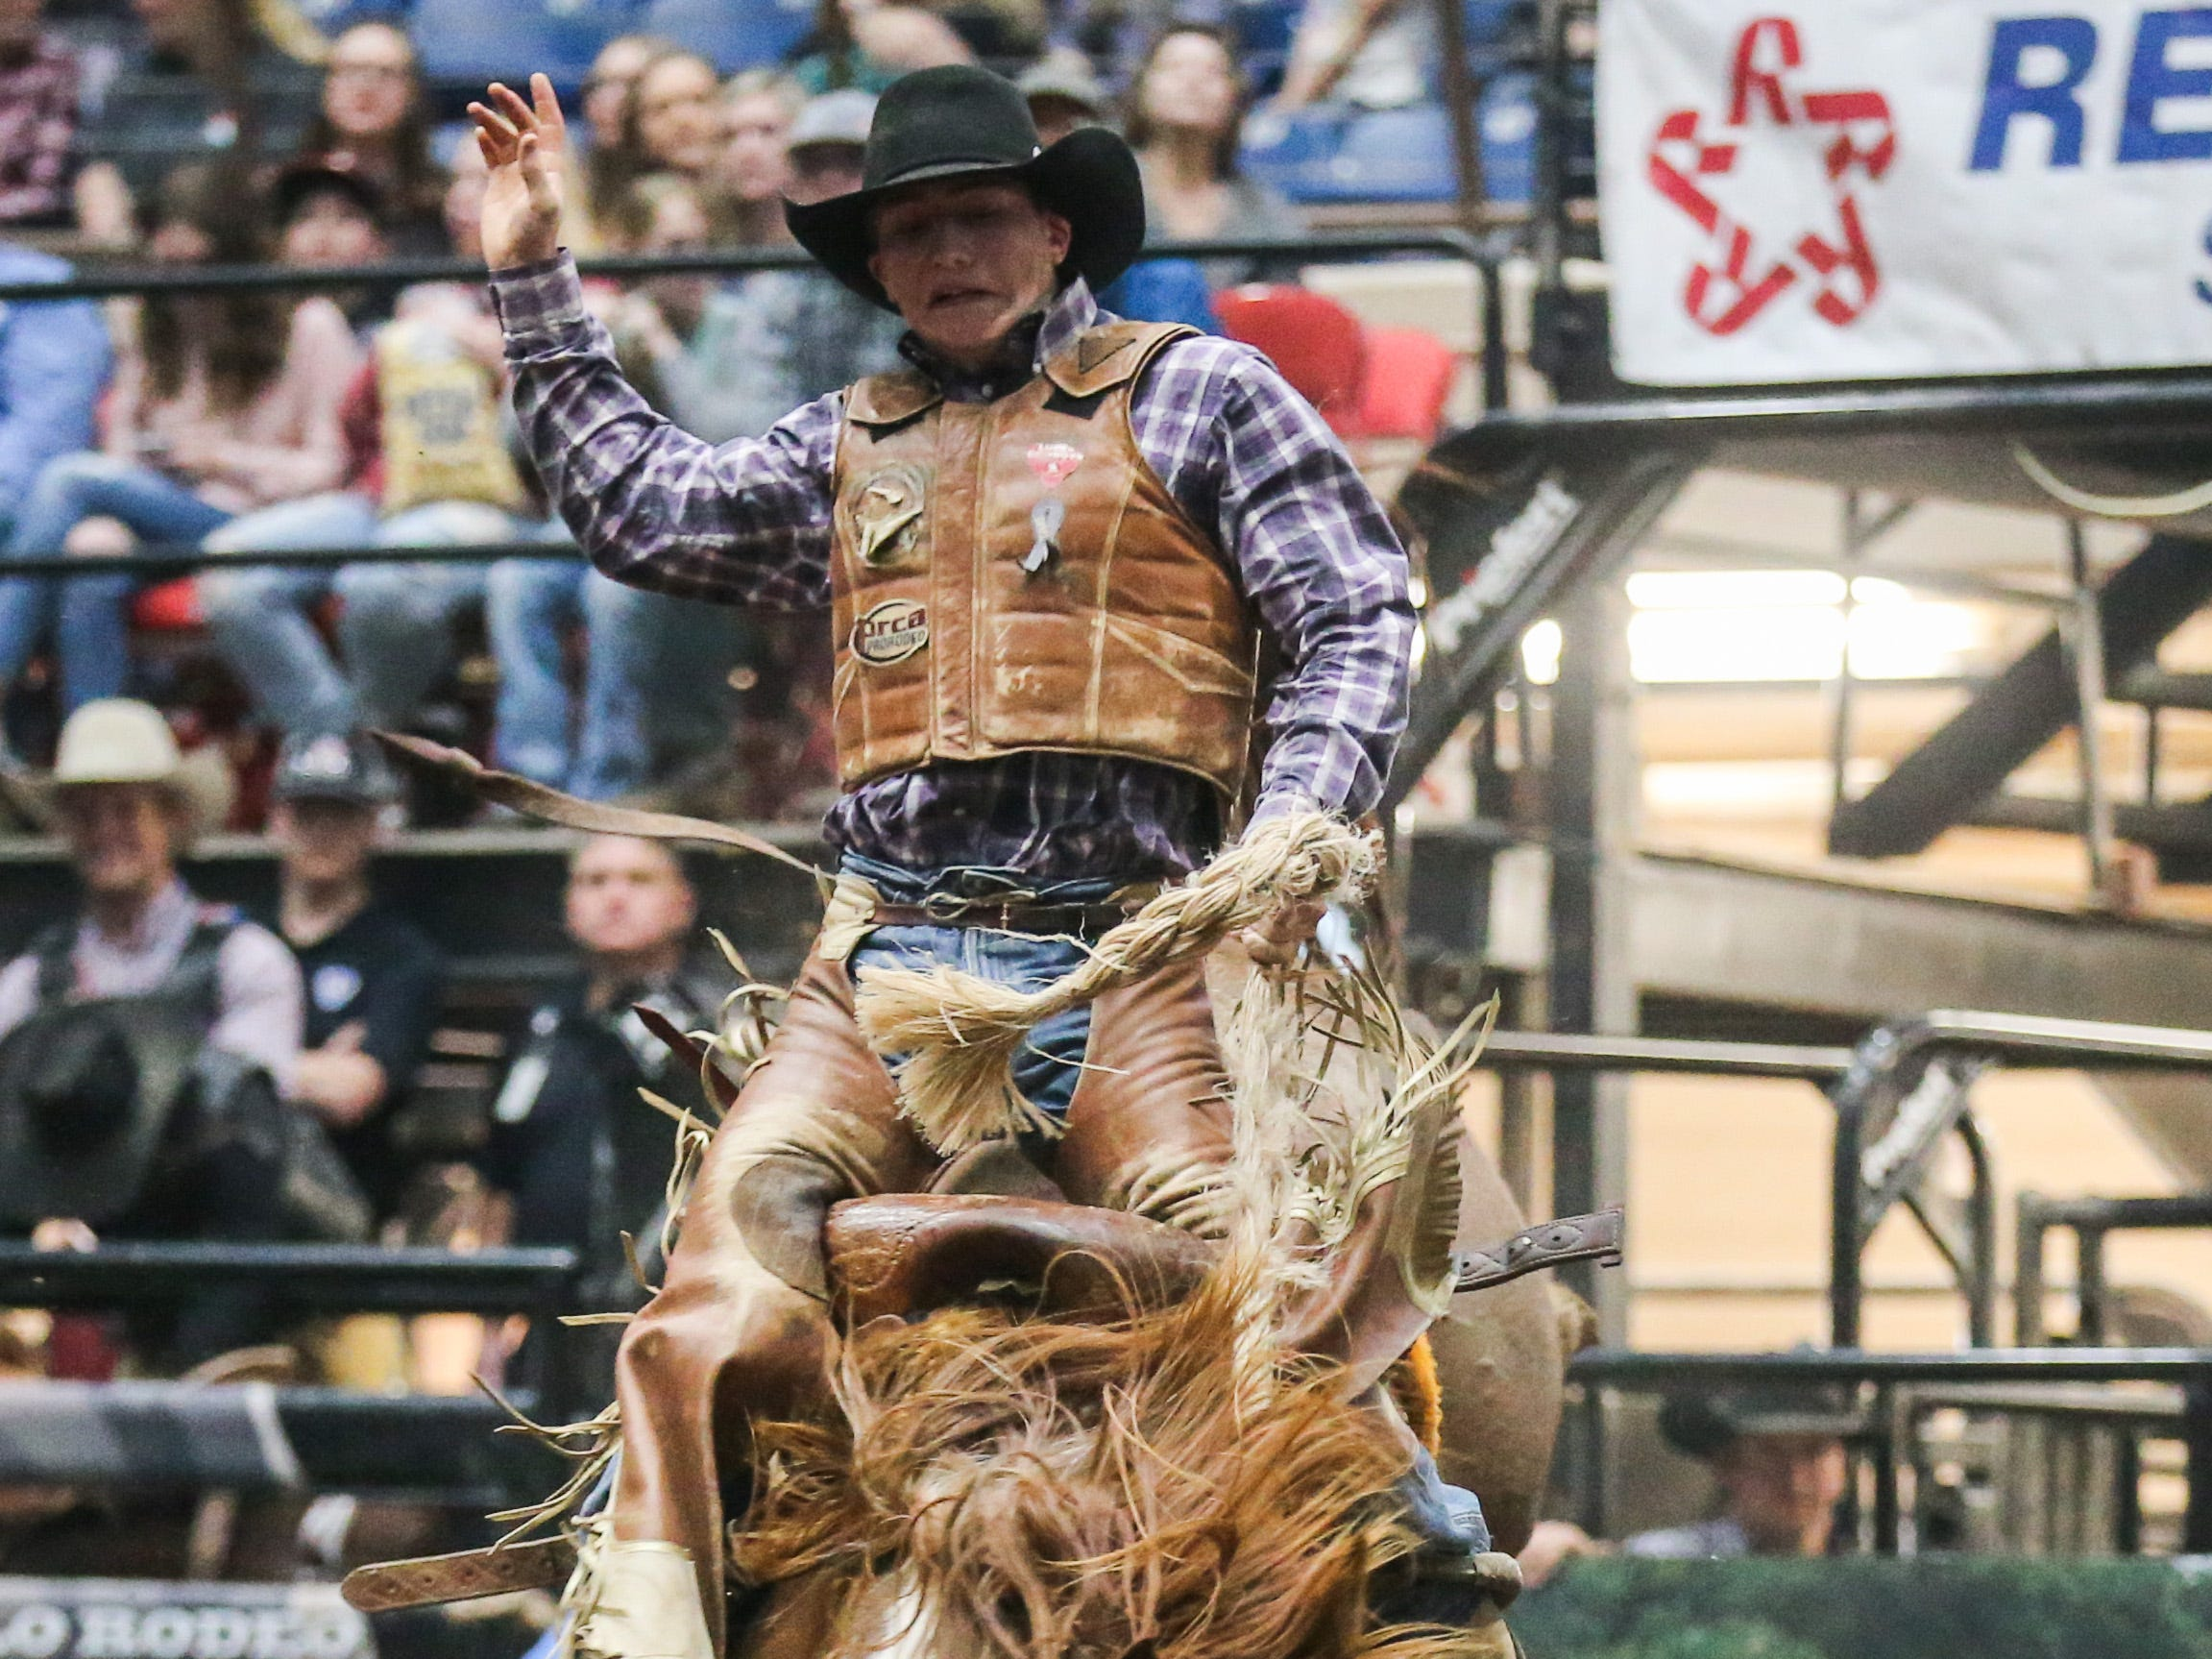 Tegan Smith rides a bronc during the 4th performance of the San Angelo Stock Show & Rodeo Sunday, Feb. 3, 2019, at Foster Communications Coliseum.